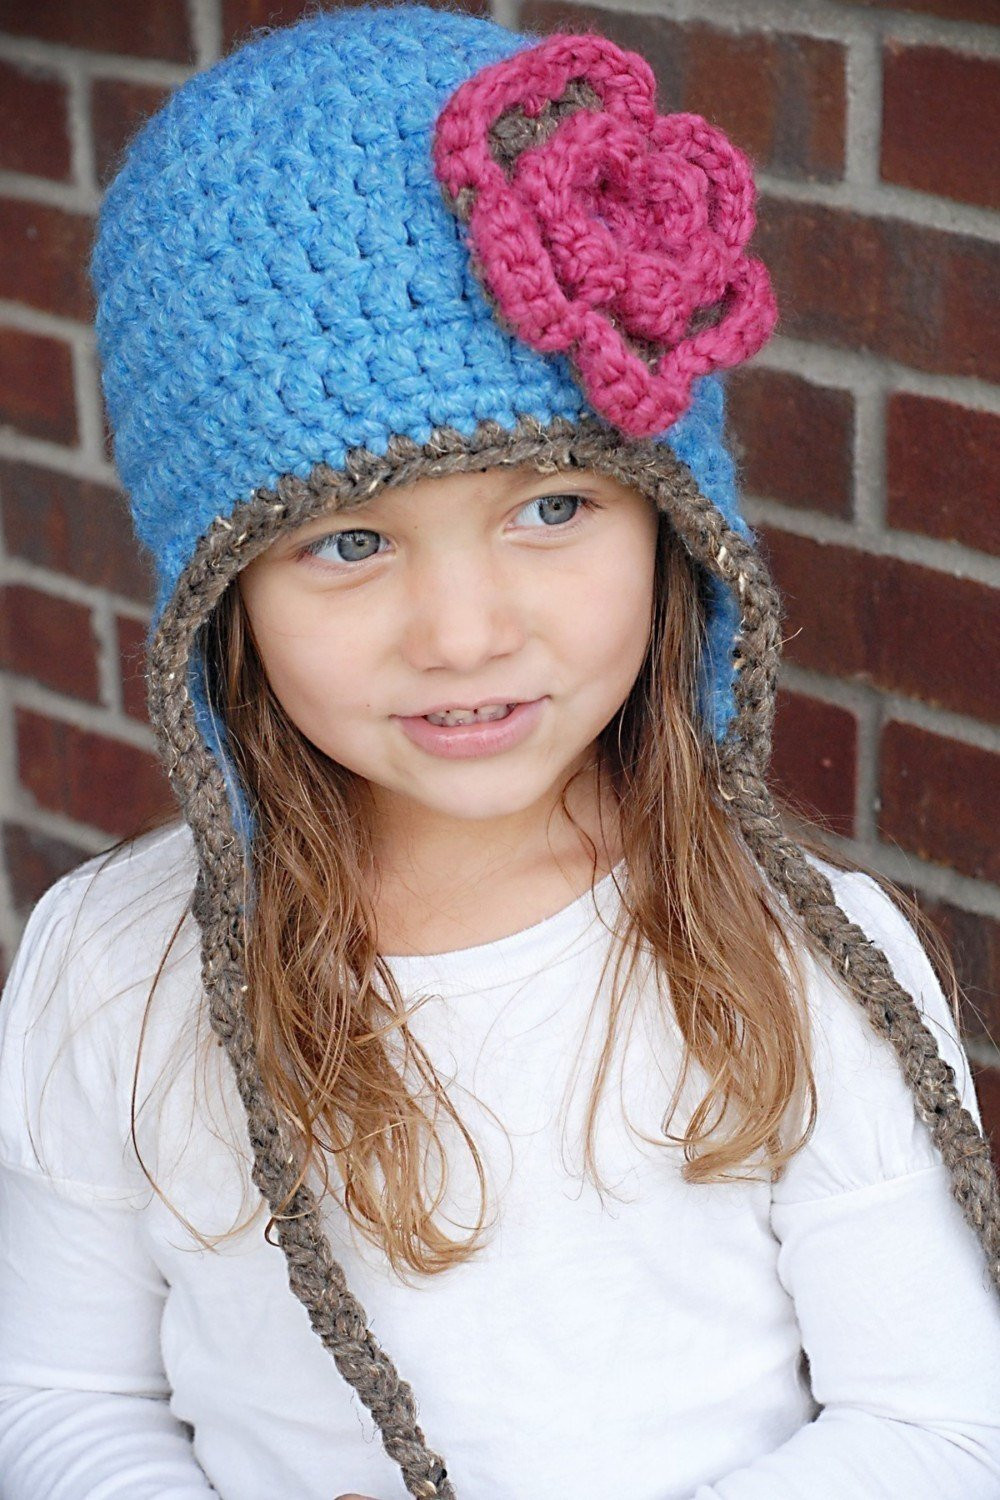 Elegant Chunky Earflap Hat Crochet Pattern Instant Download Chunky Crochet Hat Pattern Of Delightful 50 Ideas Chunky Crochet Hat Pattern